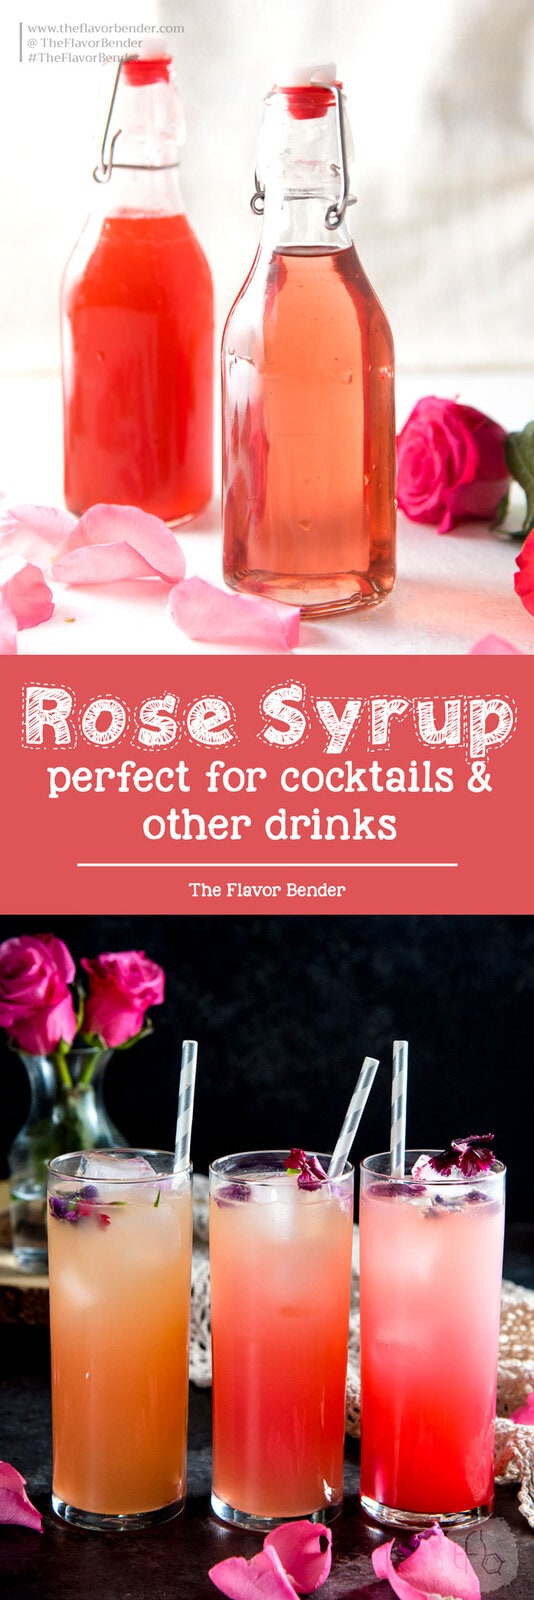 Rose Syrup (and Vanilla Rose syrup) -  made with rose water for cocktails and other drinks, like Falooda (Rose syrup milk shake) and other desserts too. #Rosewater #Floralcocktails #Rosesyrup #Falooda #FloralDrinks